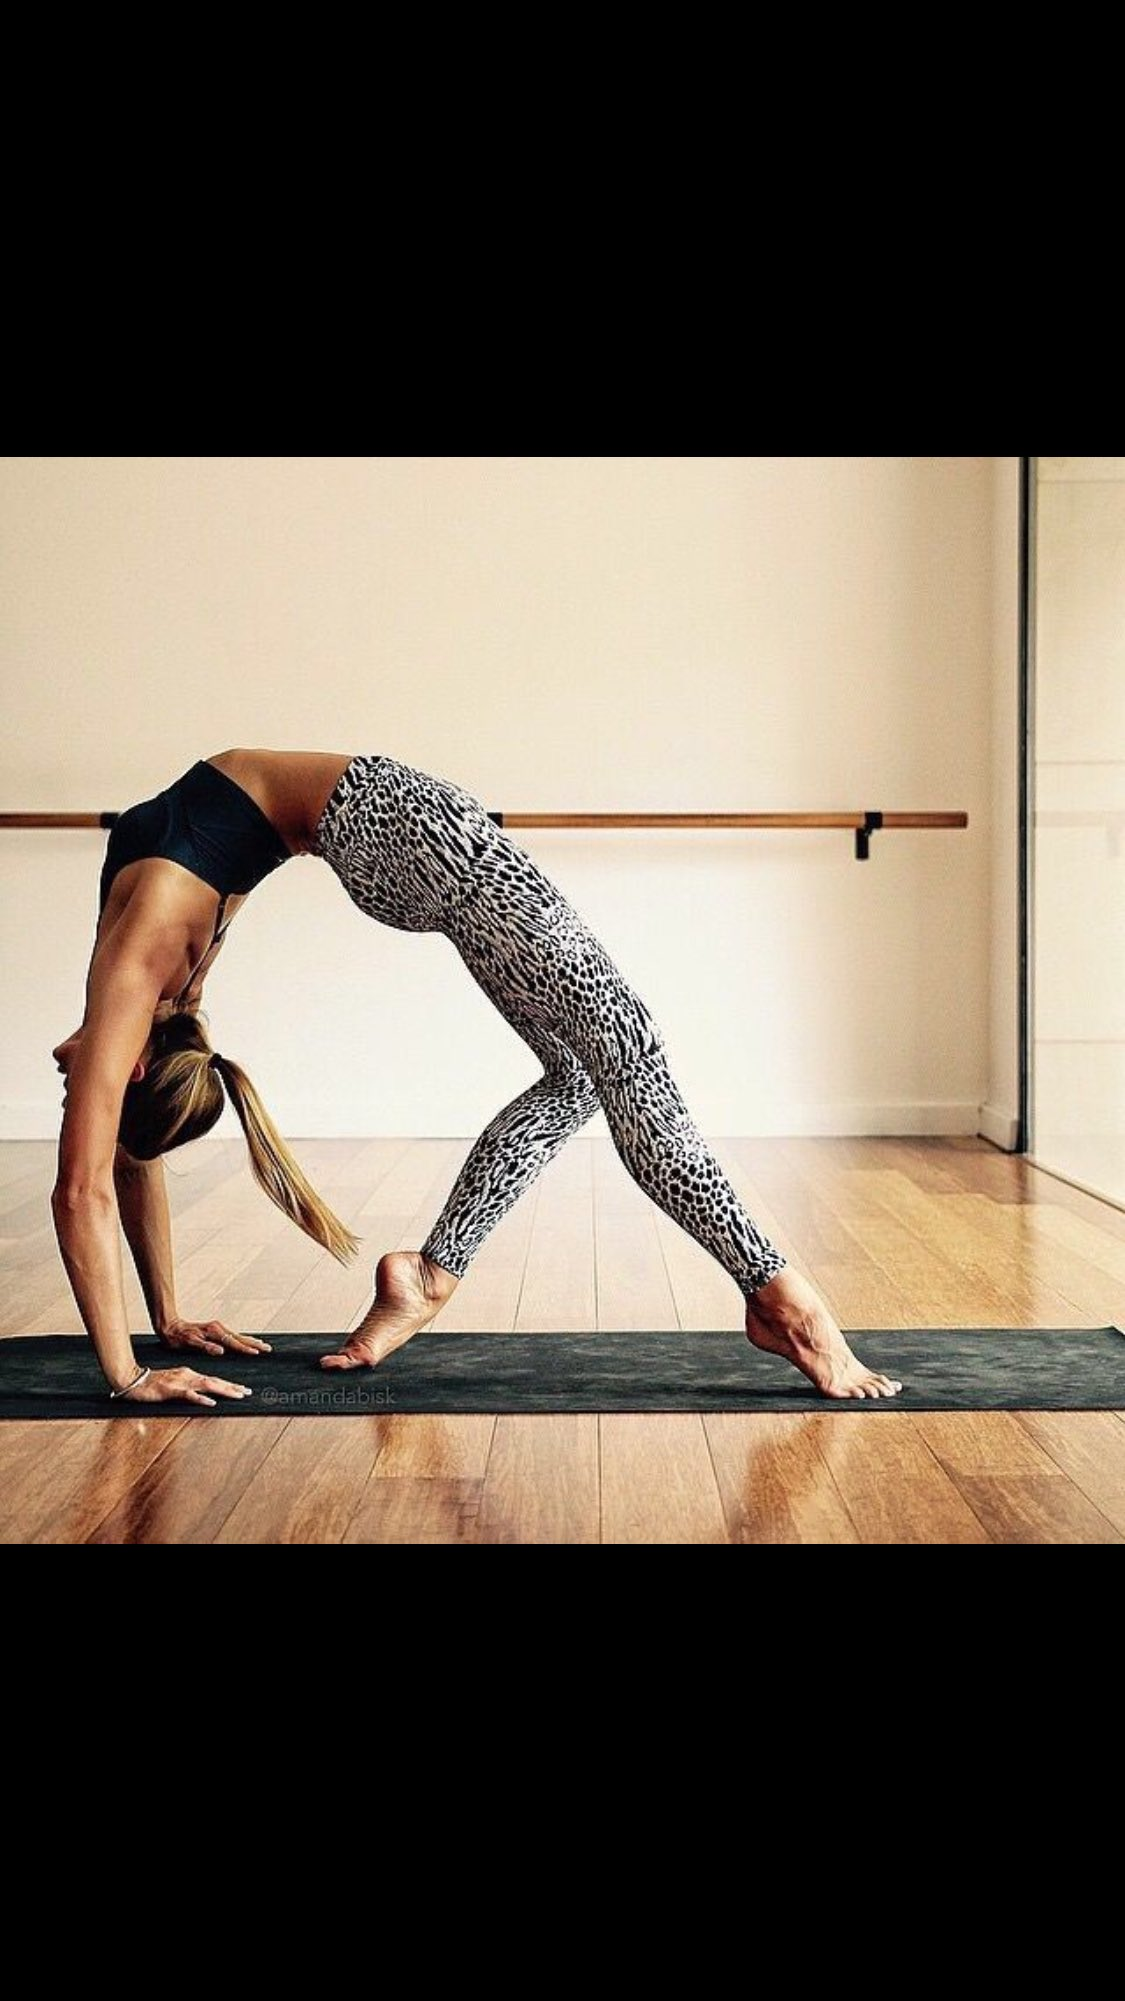 The Sum of Small improvements over time = Incredible results ~ #fitness #kundalini #yoga #sales #art #author #entrepreneur #leadership #zen https://t.co/IWZC9fwEj3